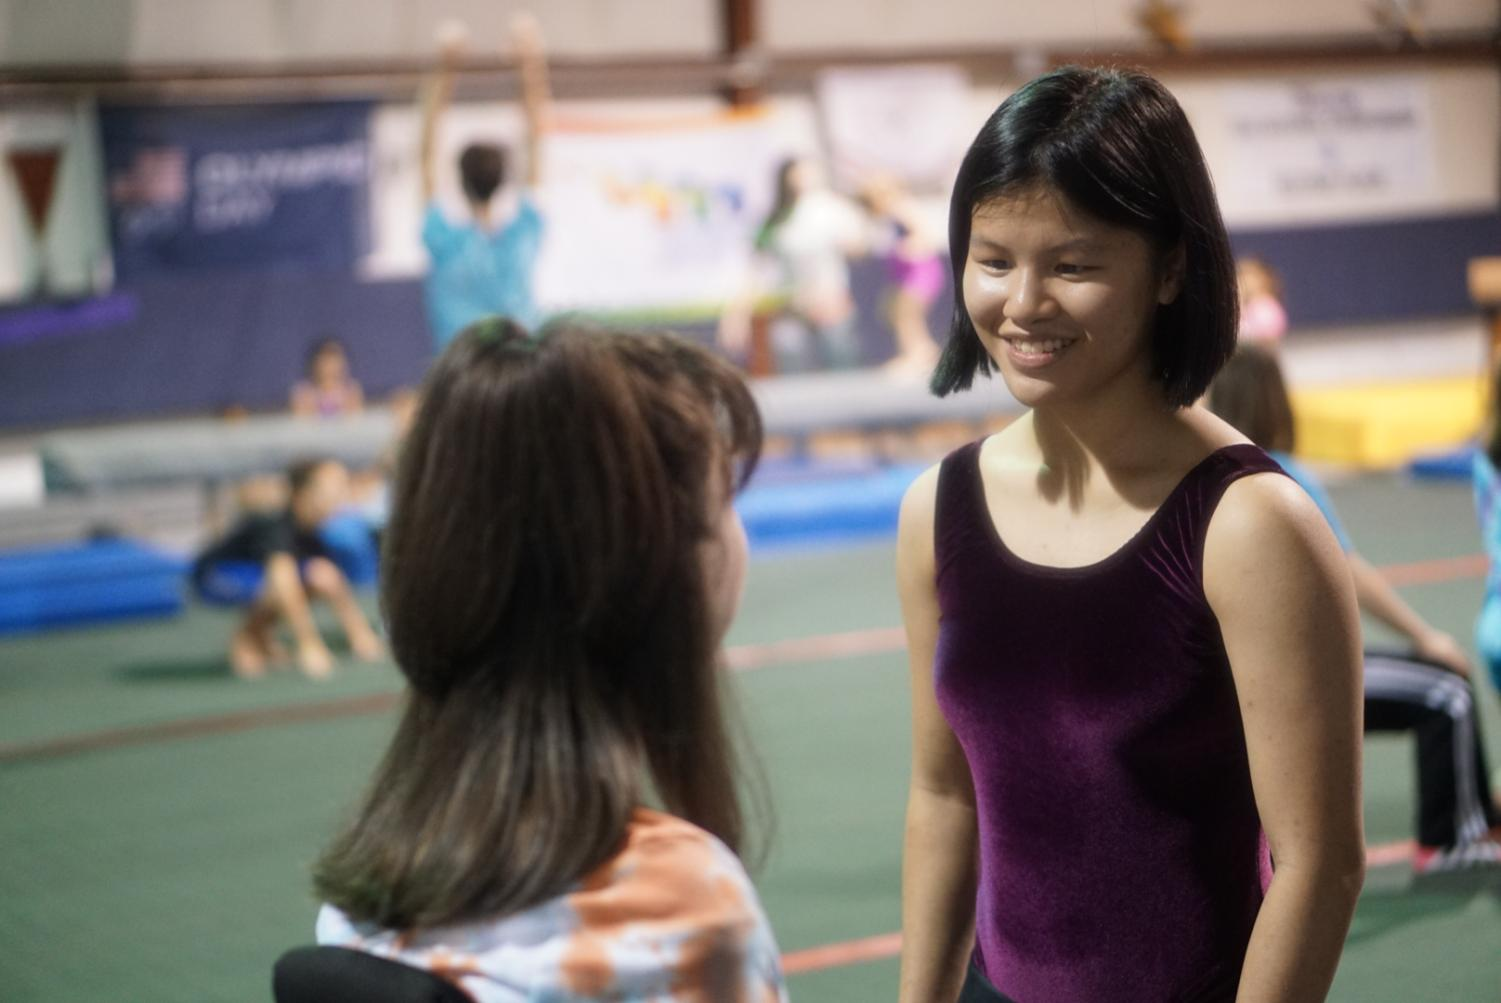 King smiles with one of her Special Olympians at the Chattooga School of Gymnastics and Dance. After a hard day's work at practice, King and her students are content with the work they have done. This bright smile is usually seen on King's face when working with the athletes in the gym.